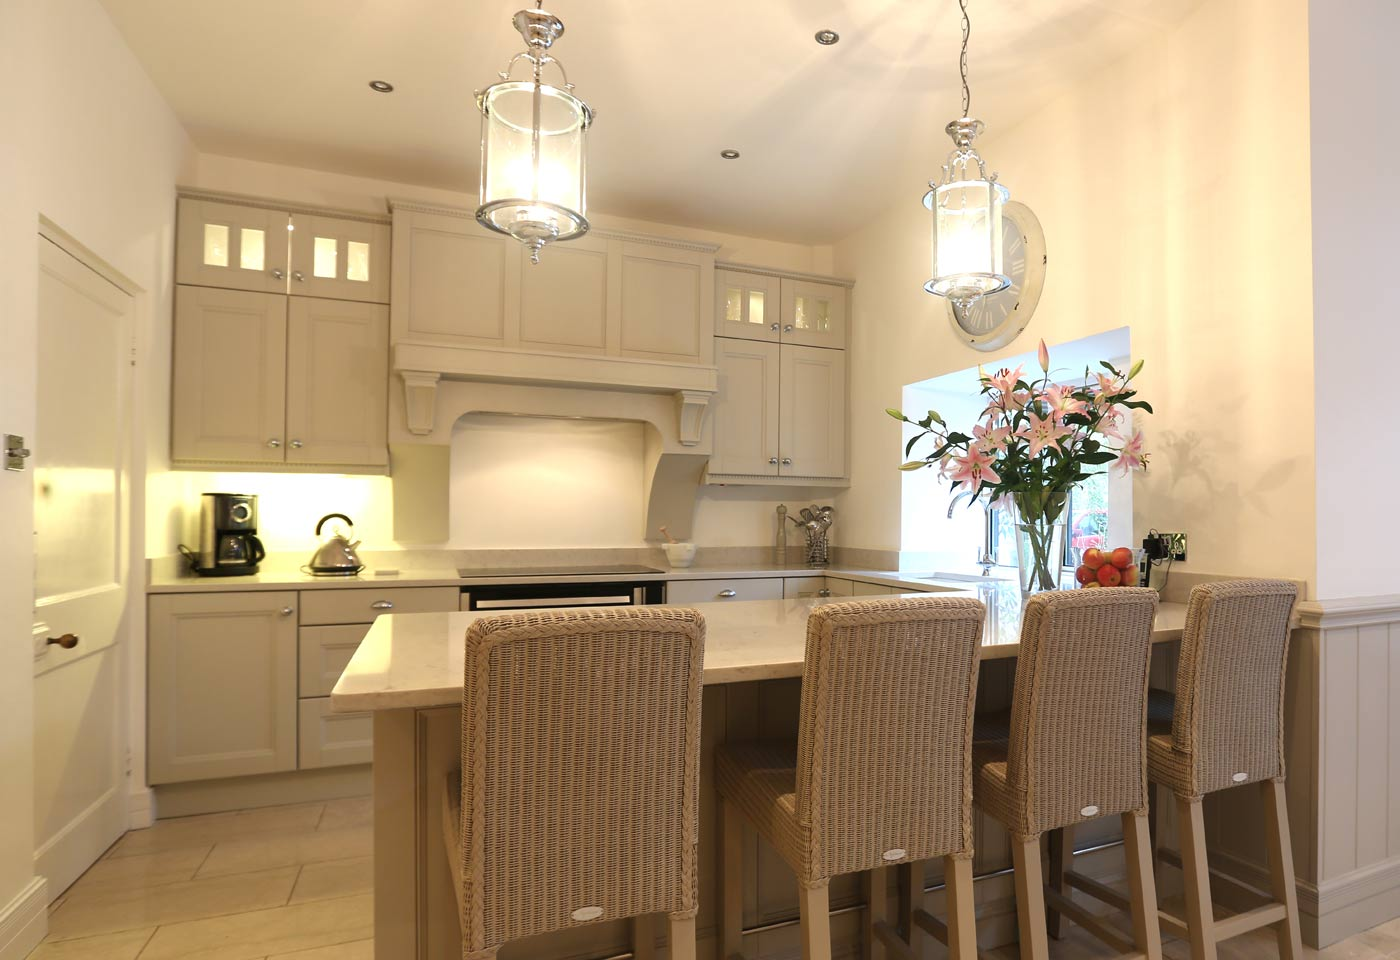 painted kitchens dublin fitted kitchens bespoke kitchens modern